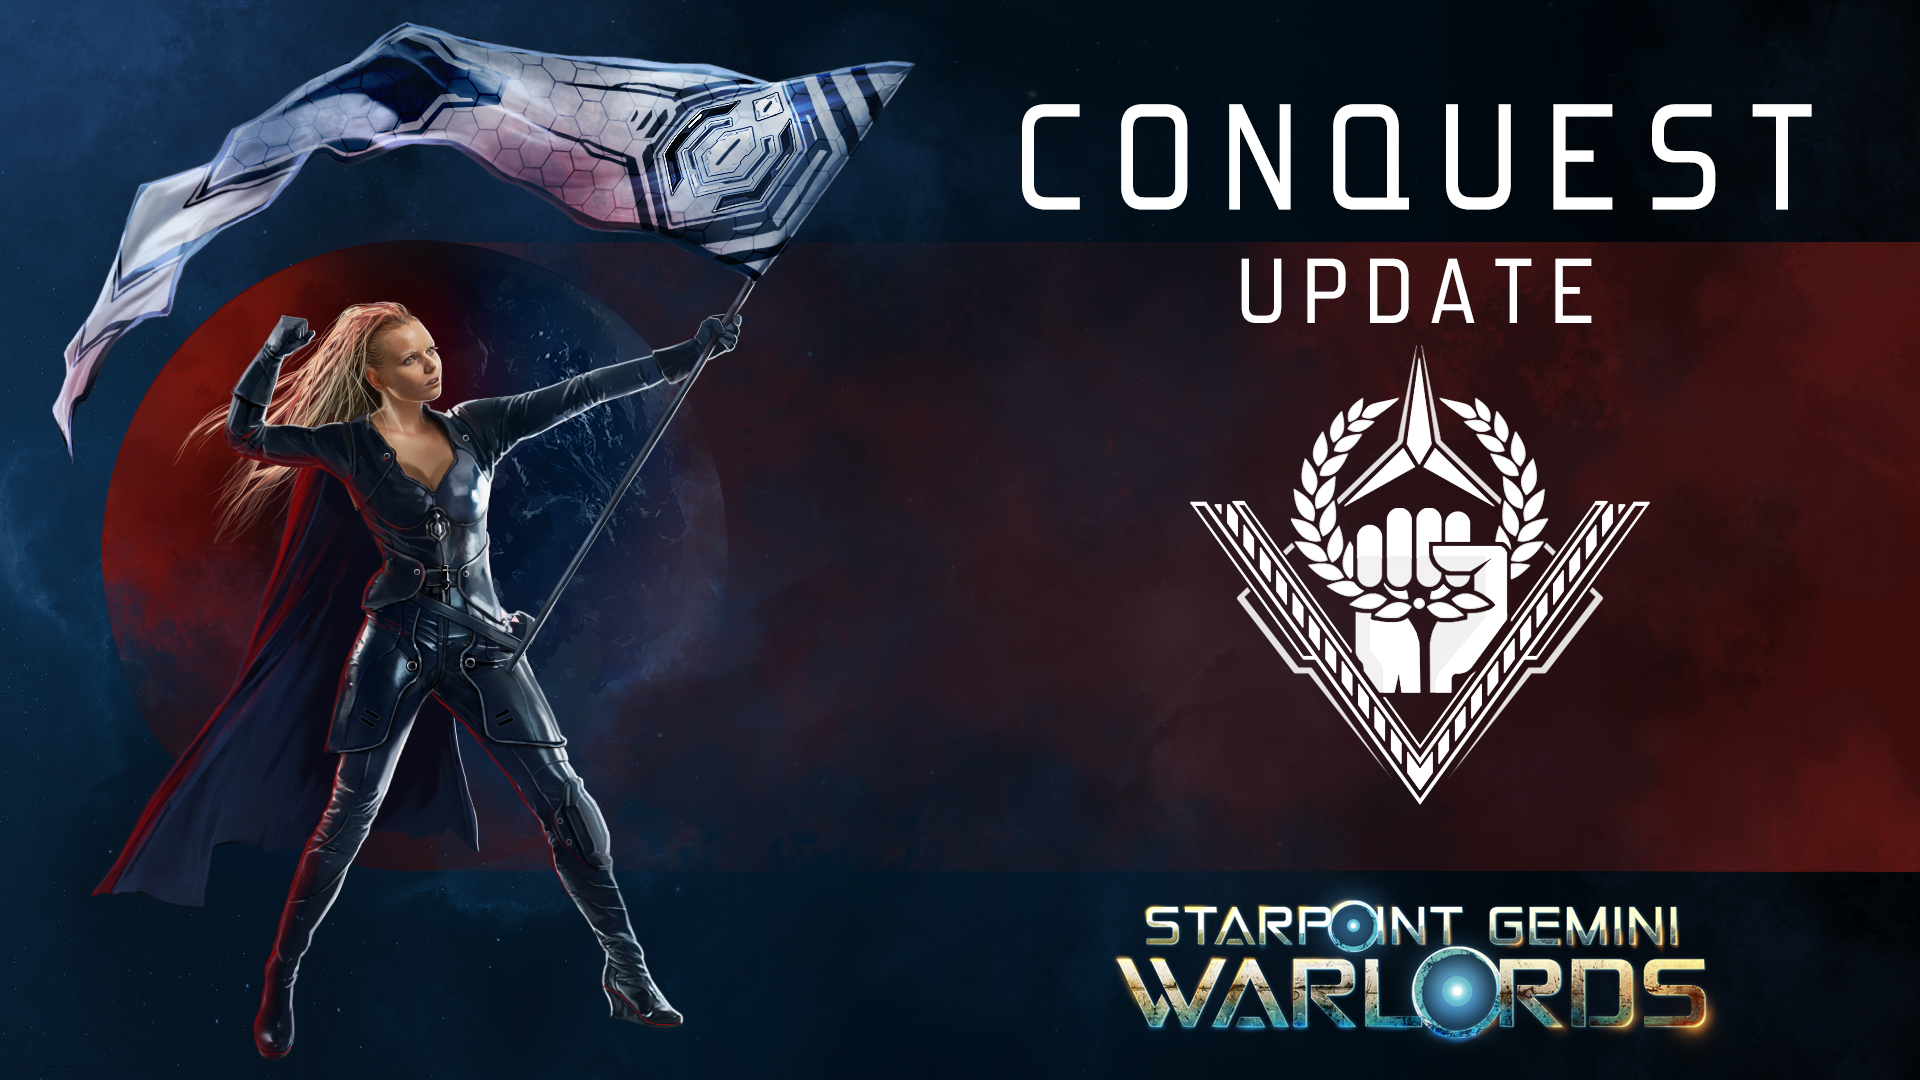 StarpointGemini Warlords Conques